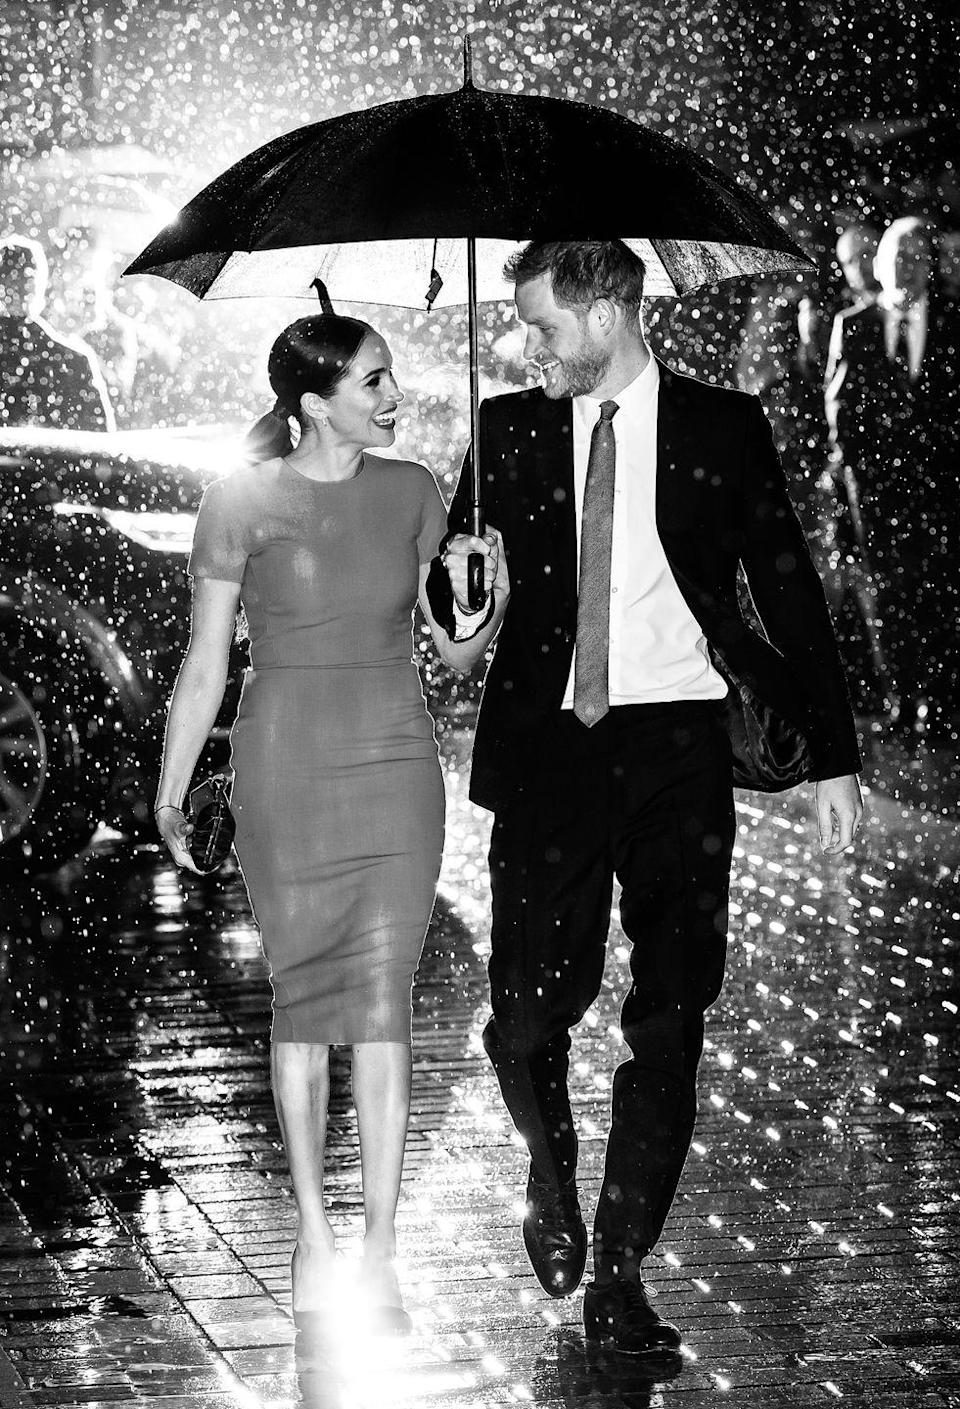 "<p>This photo, taken at the start of the Sussexes' so-called farewell tour by Samir Hussein, <a href=""https://www.townandcountrymag.com/society/tradition/a31290415/meghan-markle-prince-harry-umbrella-photo-endeavour-fund-awards-interview/"" rel=""nofollow noopener"" target=""_blank"" data-ylk=""slk:is being called historic for how it captured the moment."" class=""link rapid-noclick-resp"">is being called historic for how it captured the moment.</a></p>"